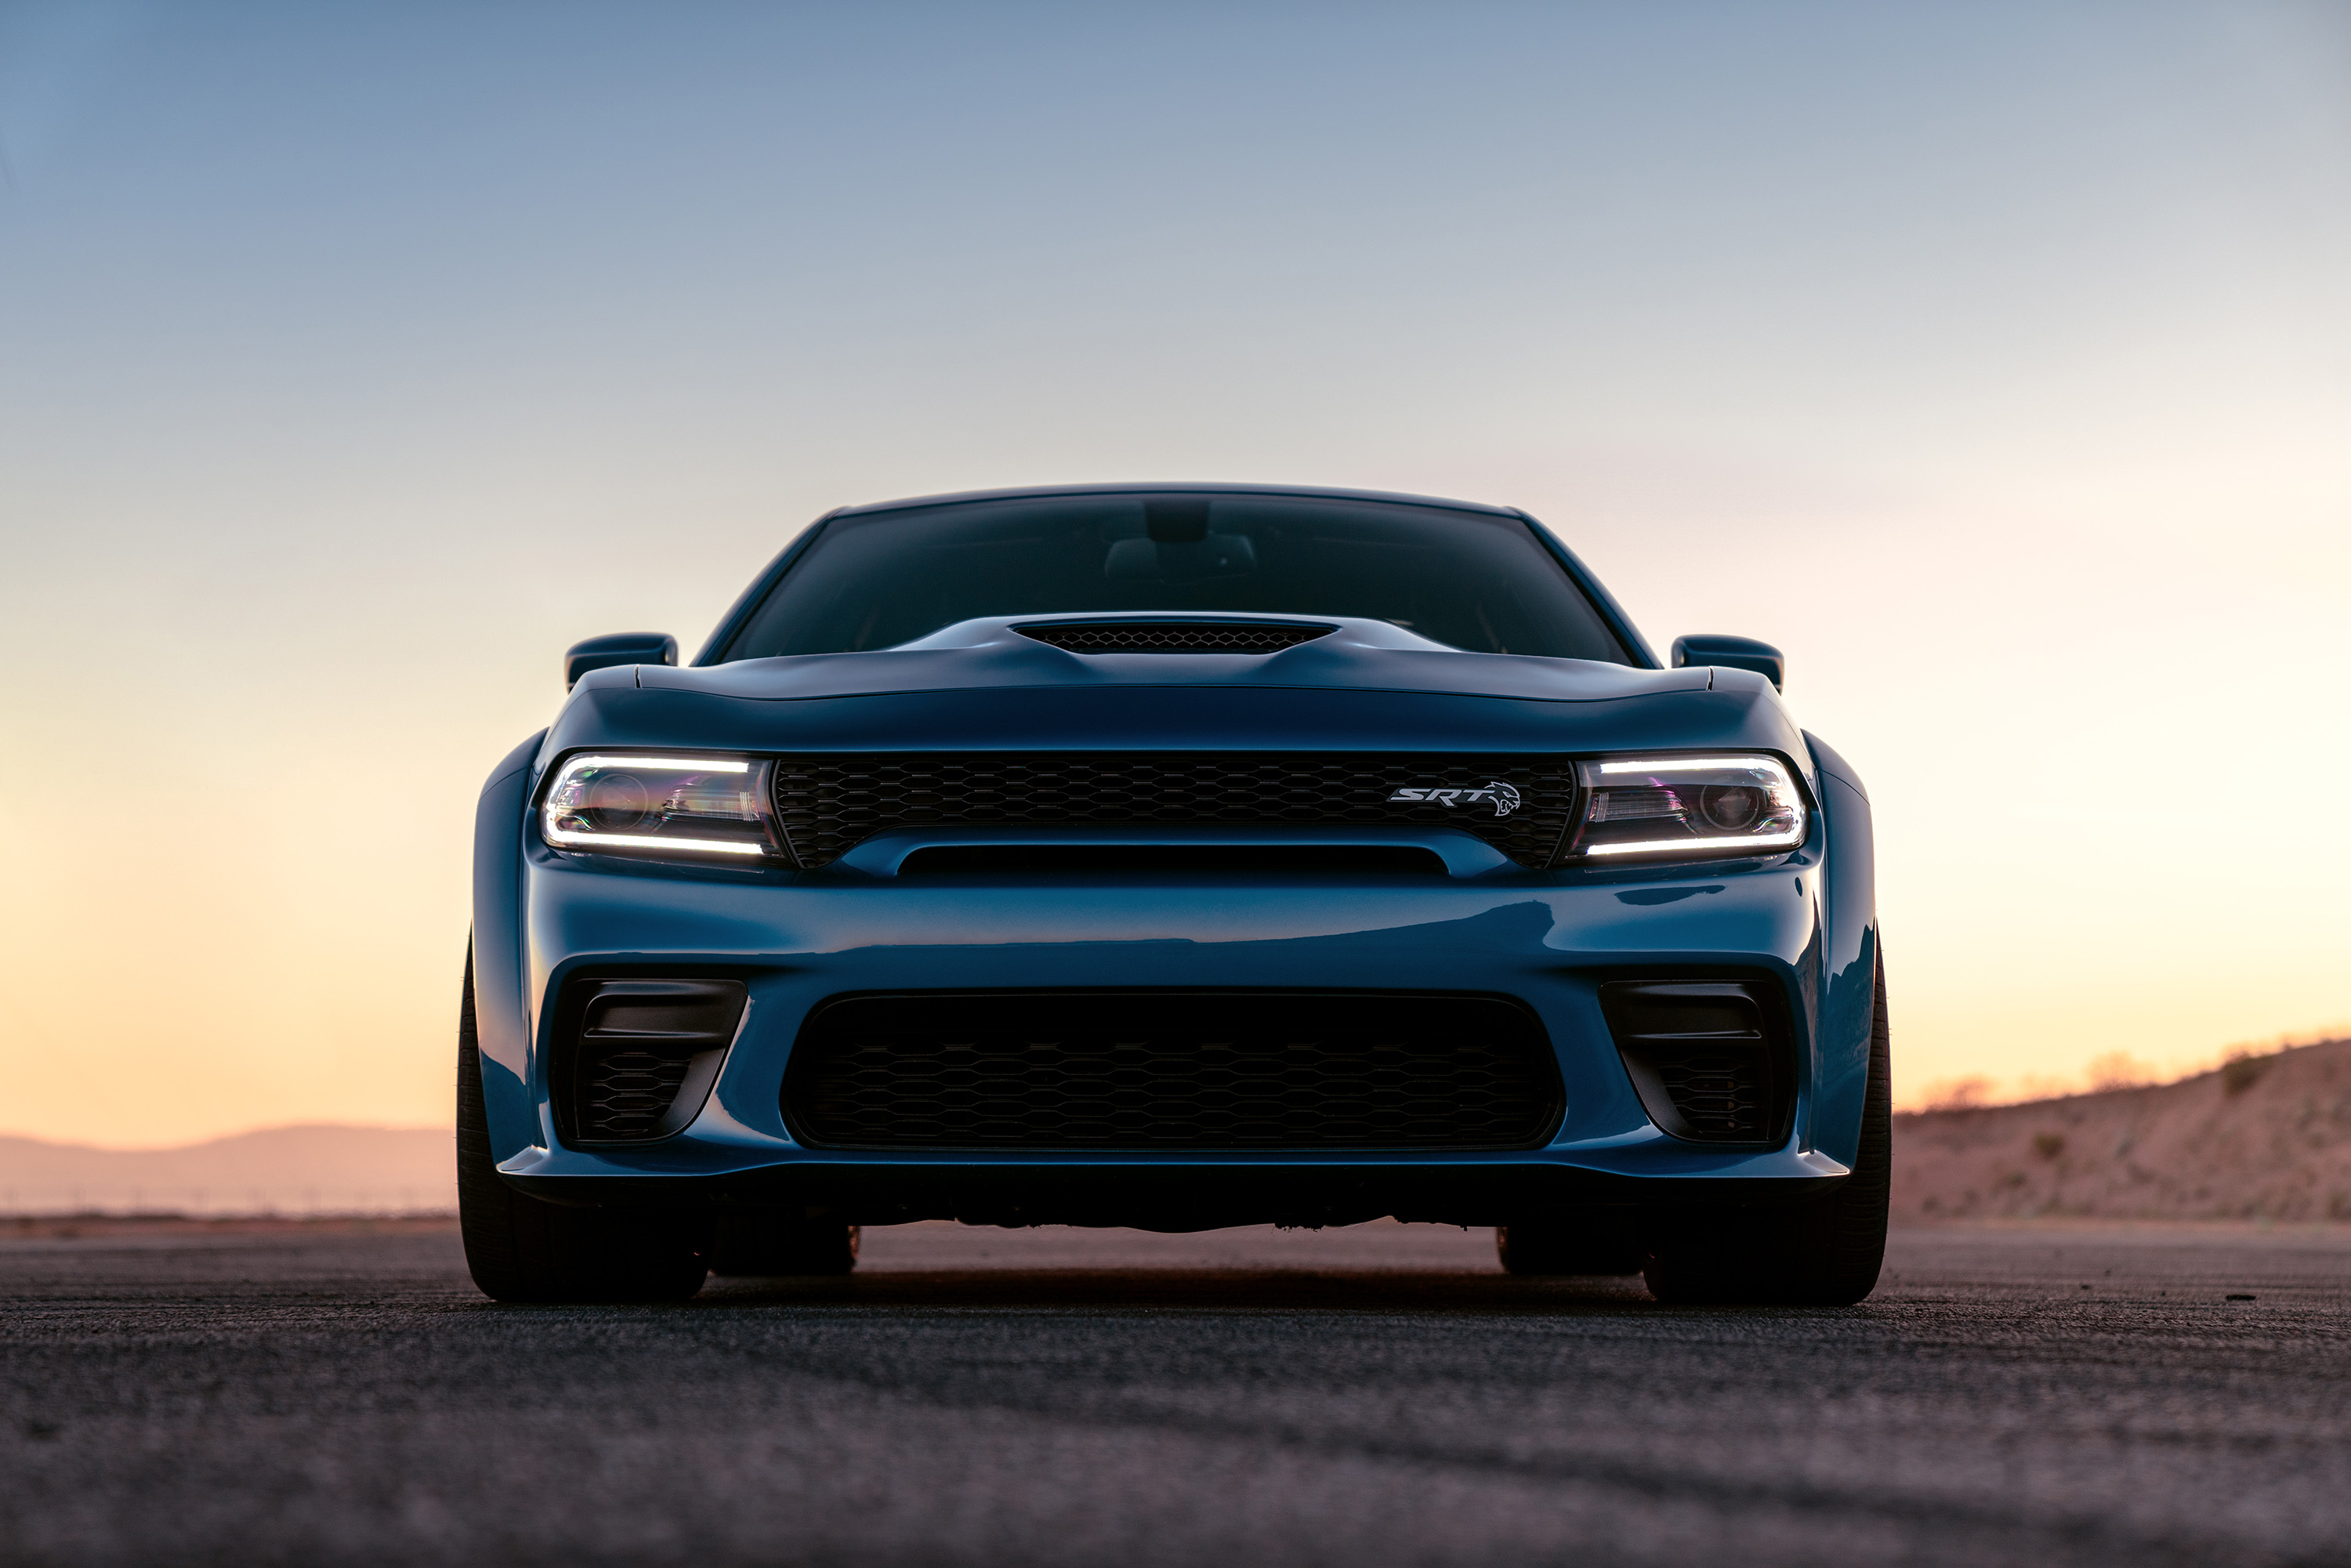 2020 Dodge Charger Srt Hellcat Widebody 4k Hd Cars 4k Wallpapers Images Backgrounds Photos And Pictures